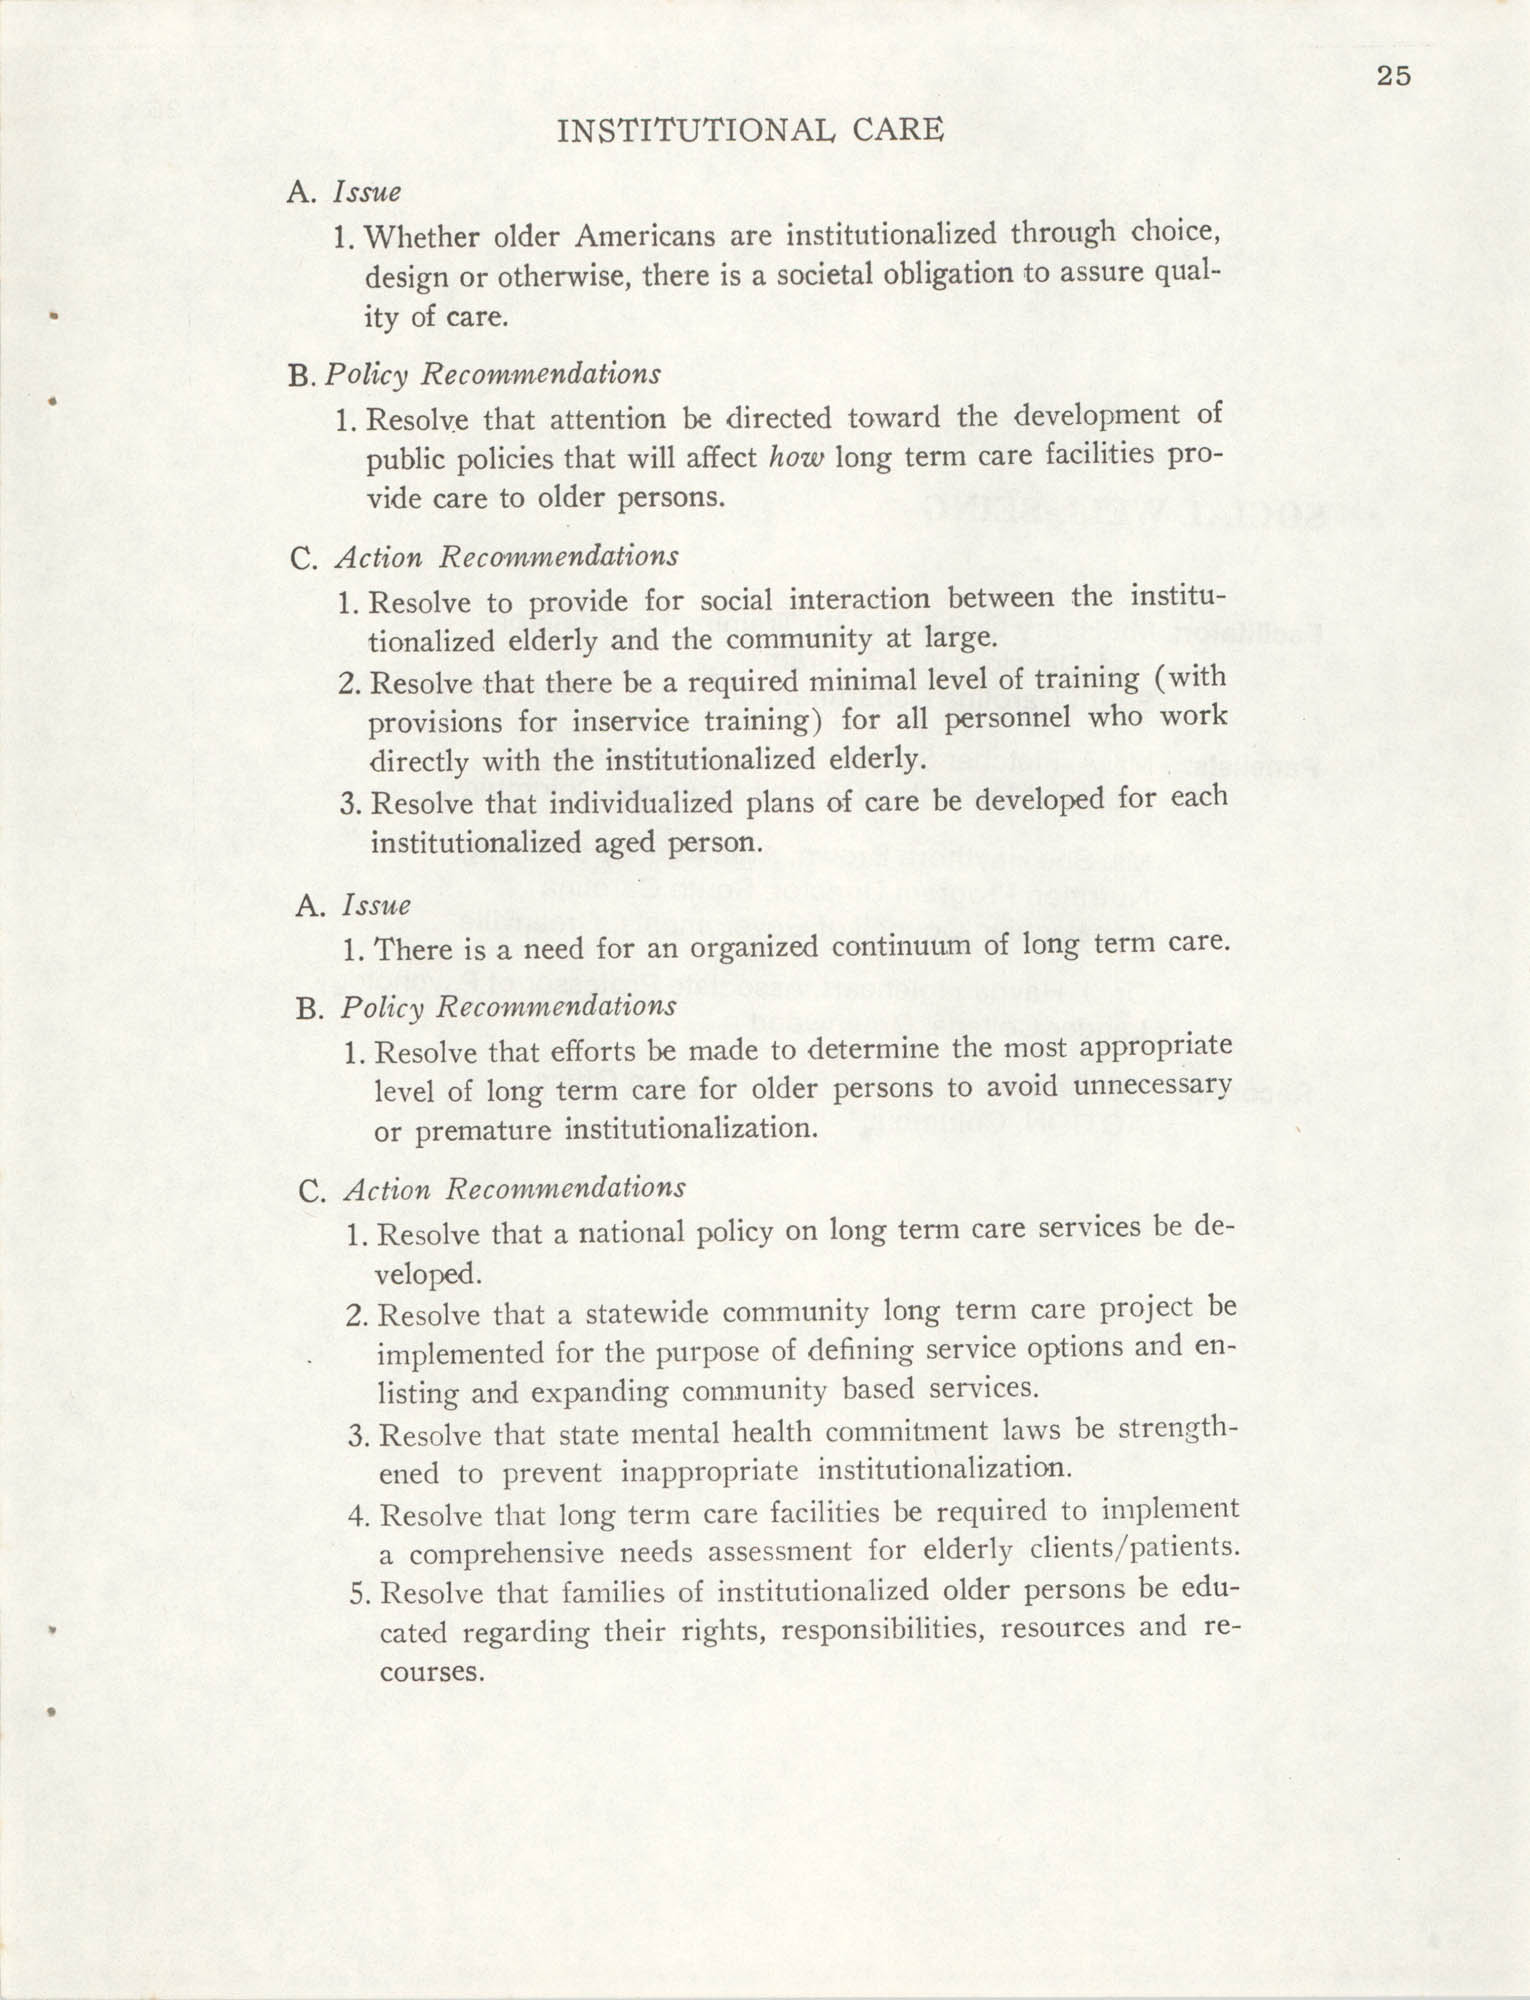 South Carolina Governor's White House Conference on Aging Proceedings, 1981, Page 25